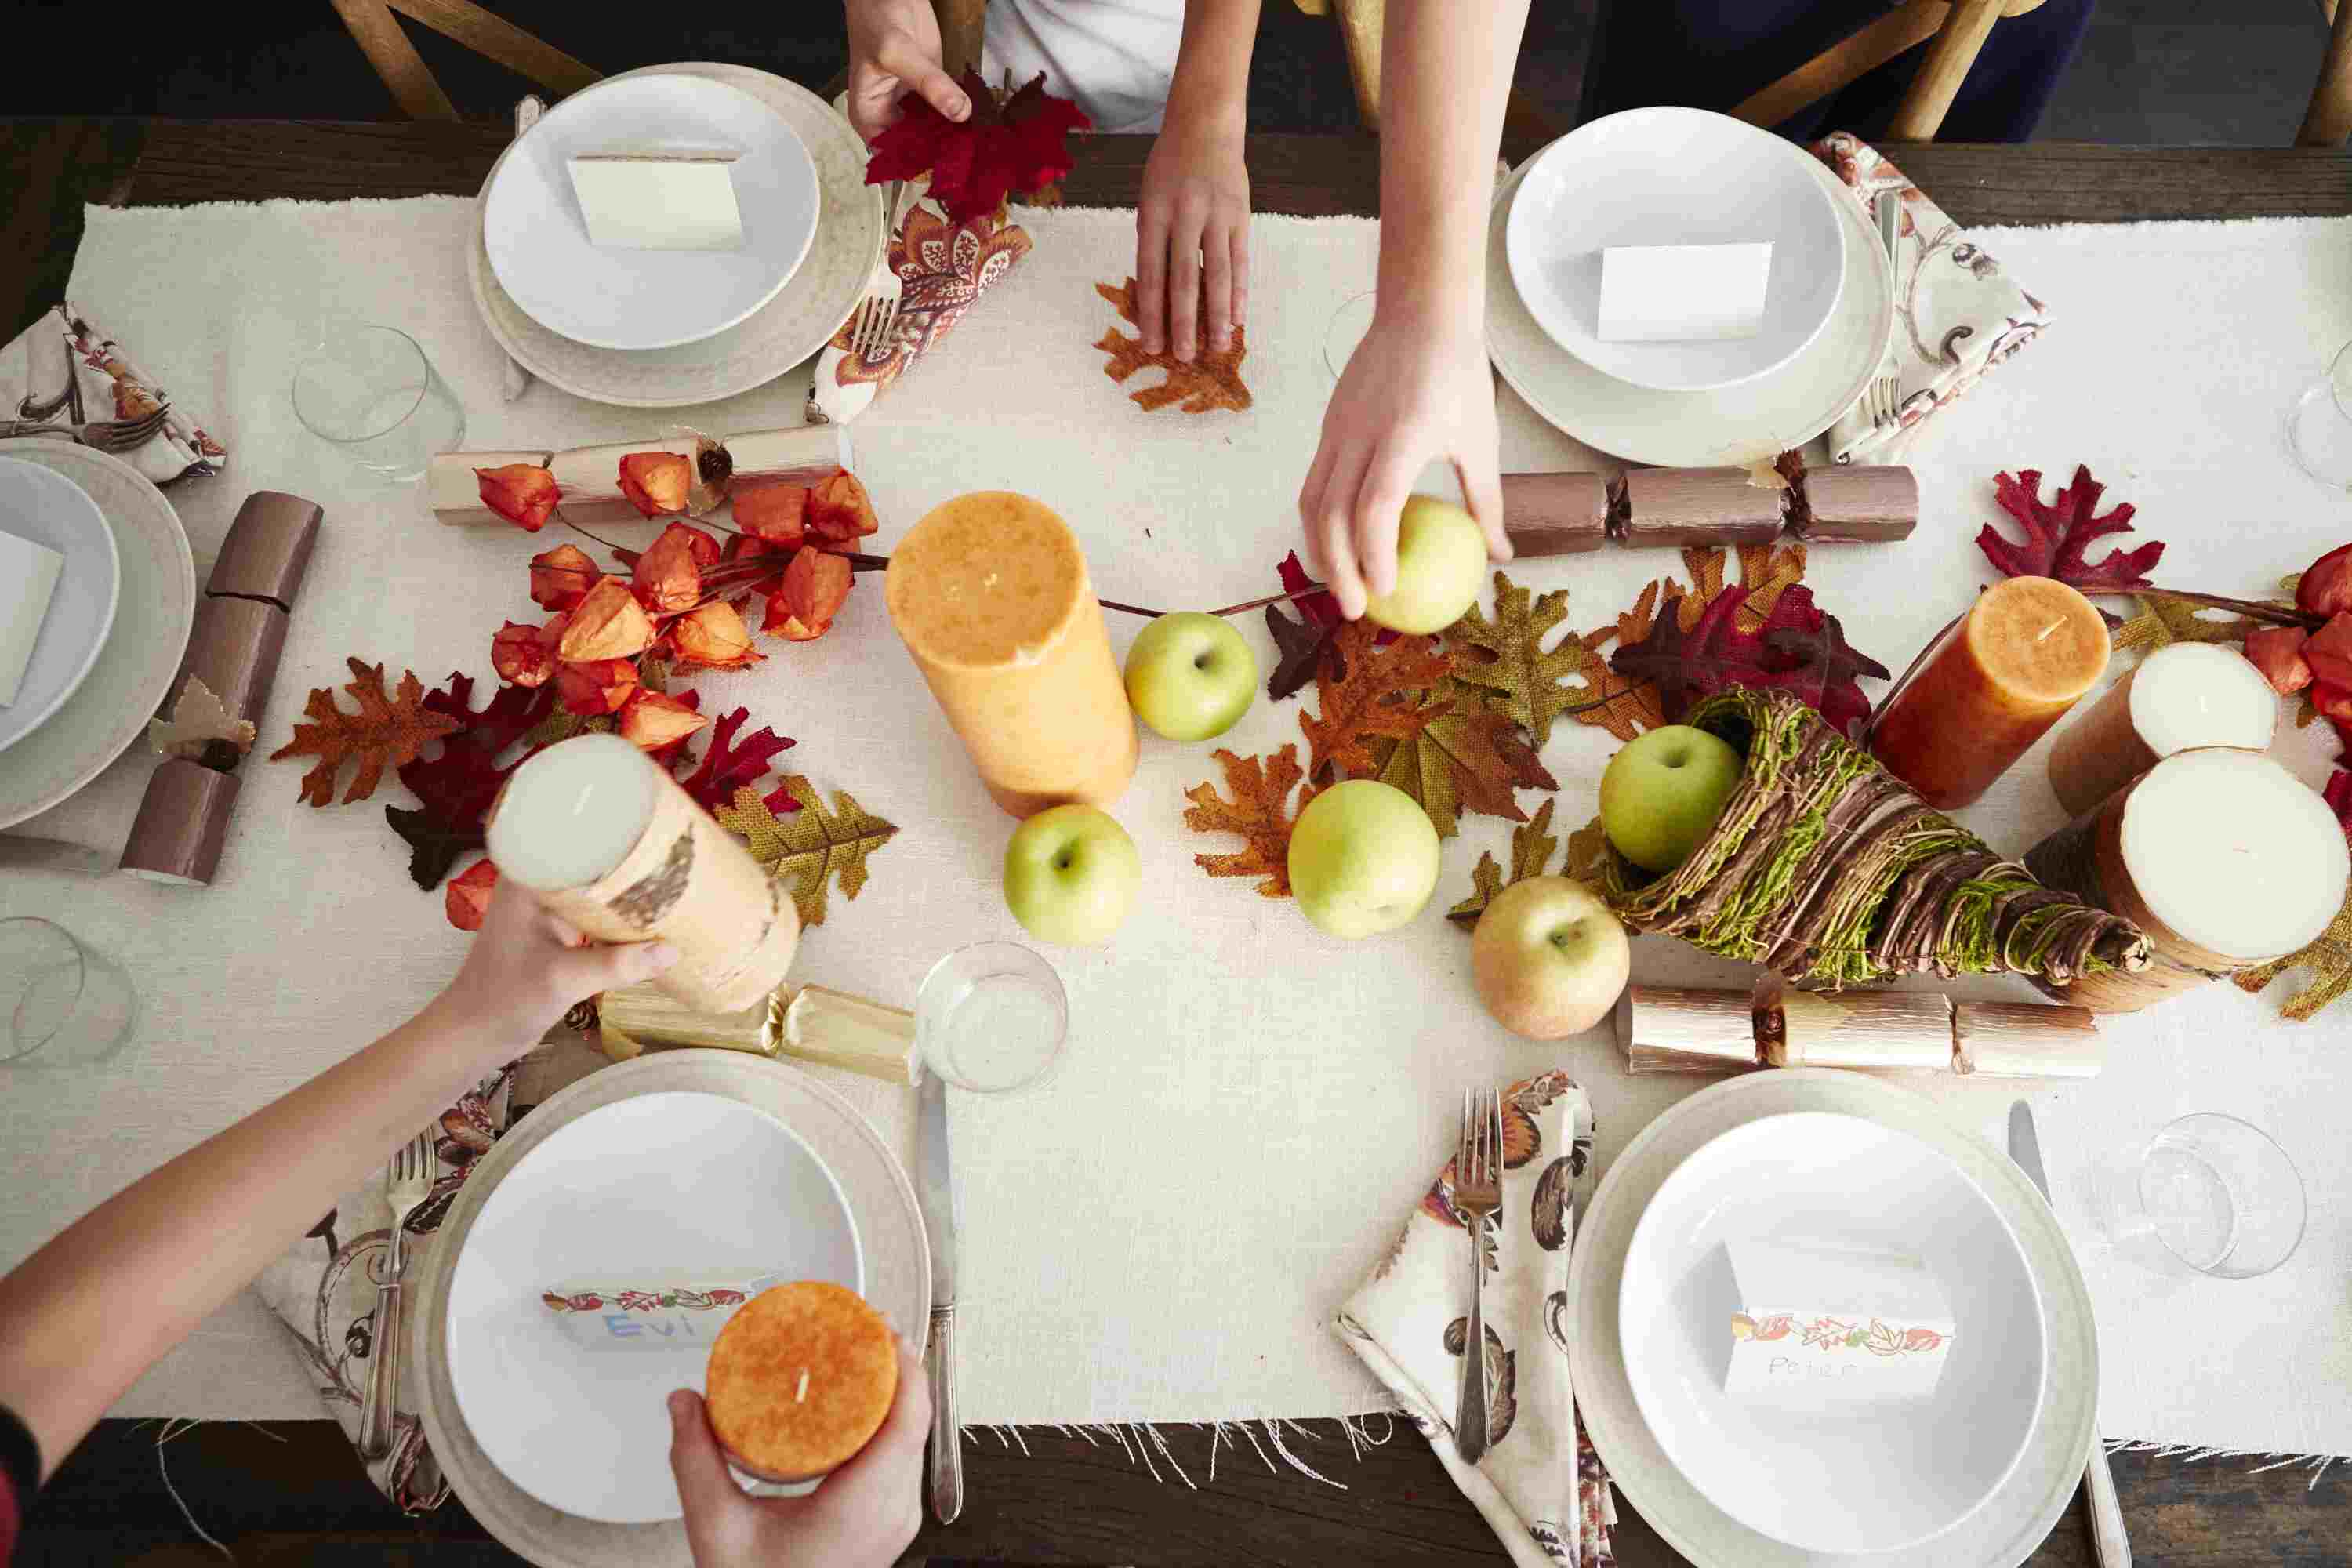 Fun Ways Kids Can Help Decorate for Thanksgiving